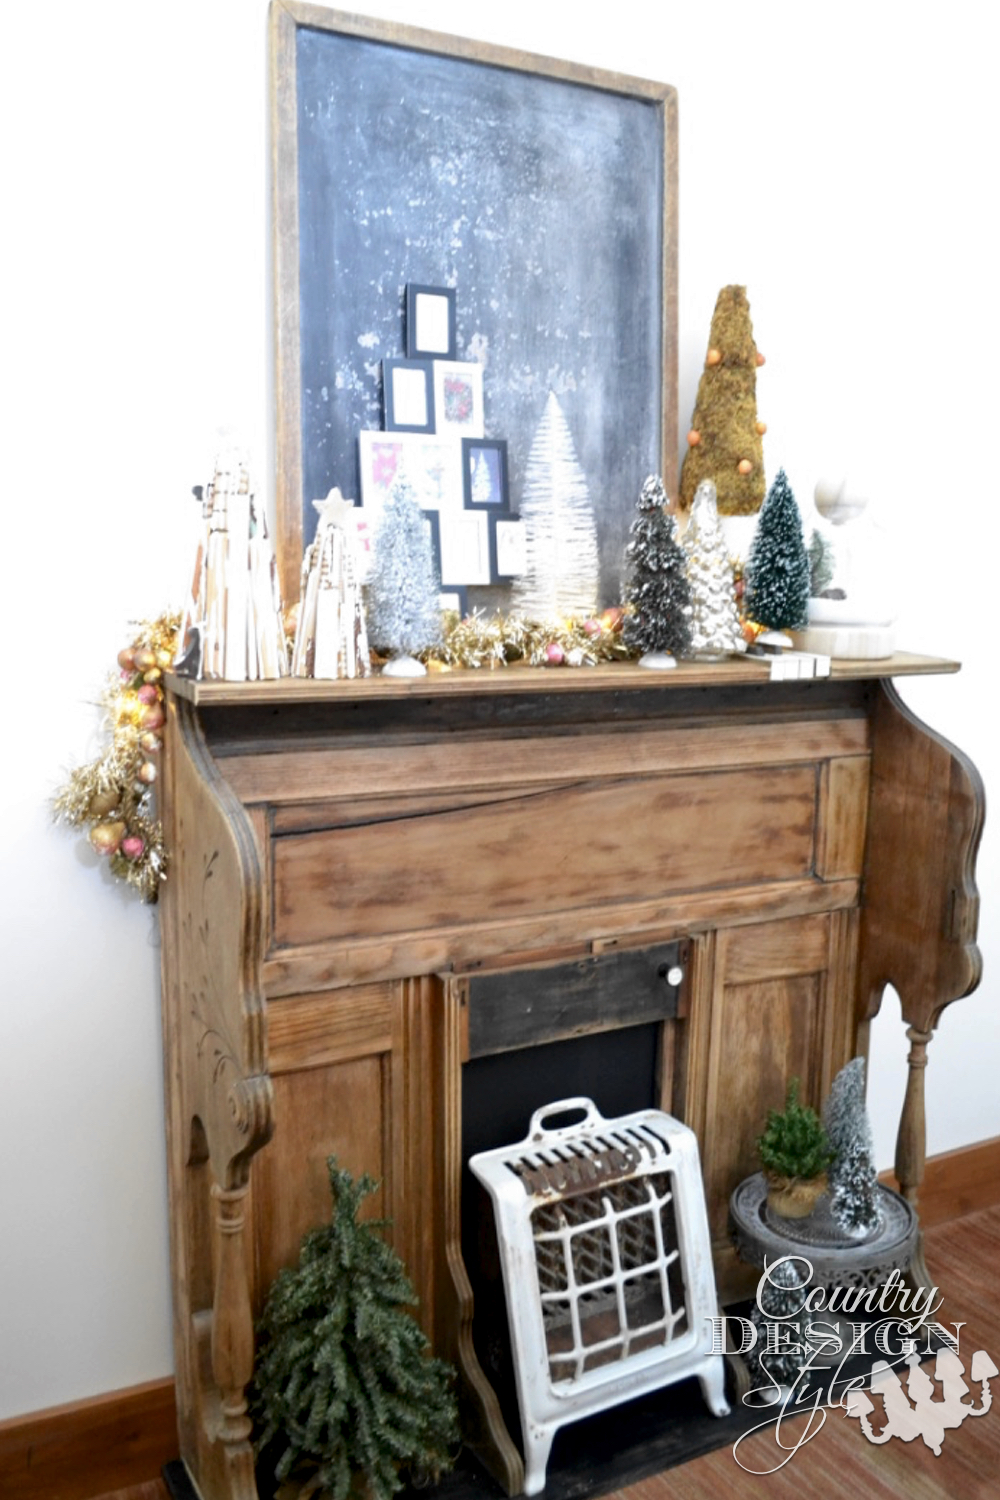 Unique Fireplace Mantels delightful unique fireplace makeover in one hour - country design